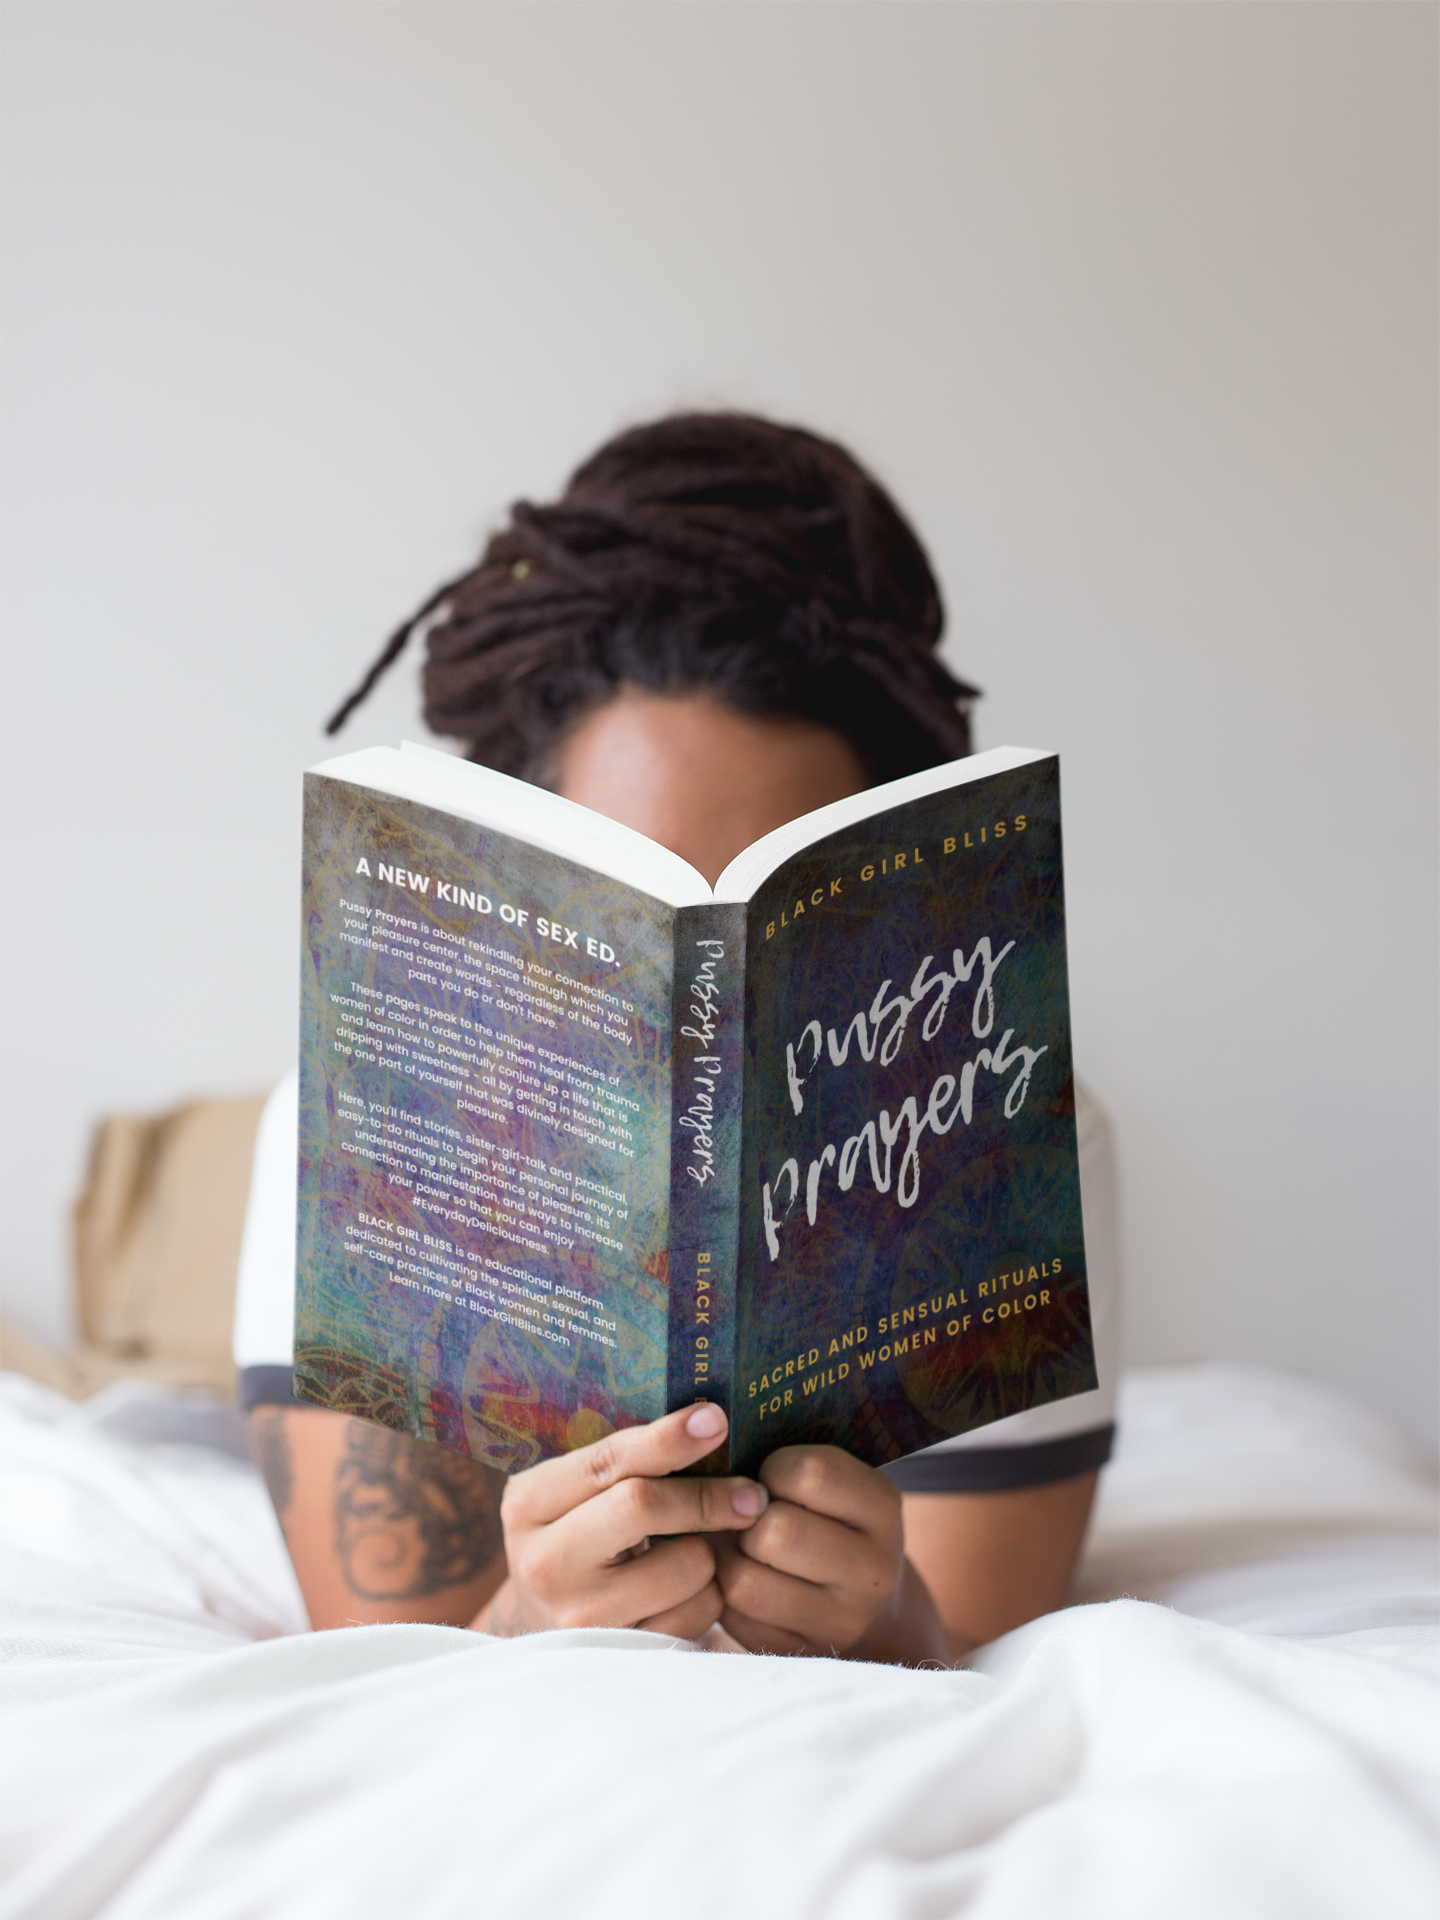 girl-with-dreadlocks-reading-a-book-mockup-while-in-bed-a17301.png